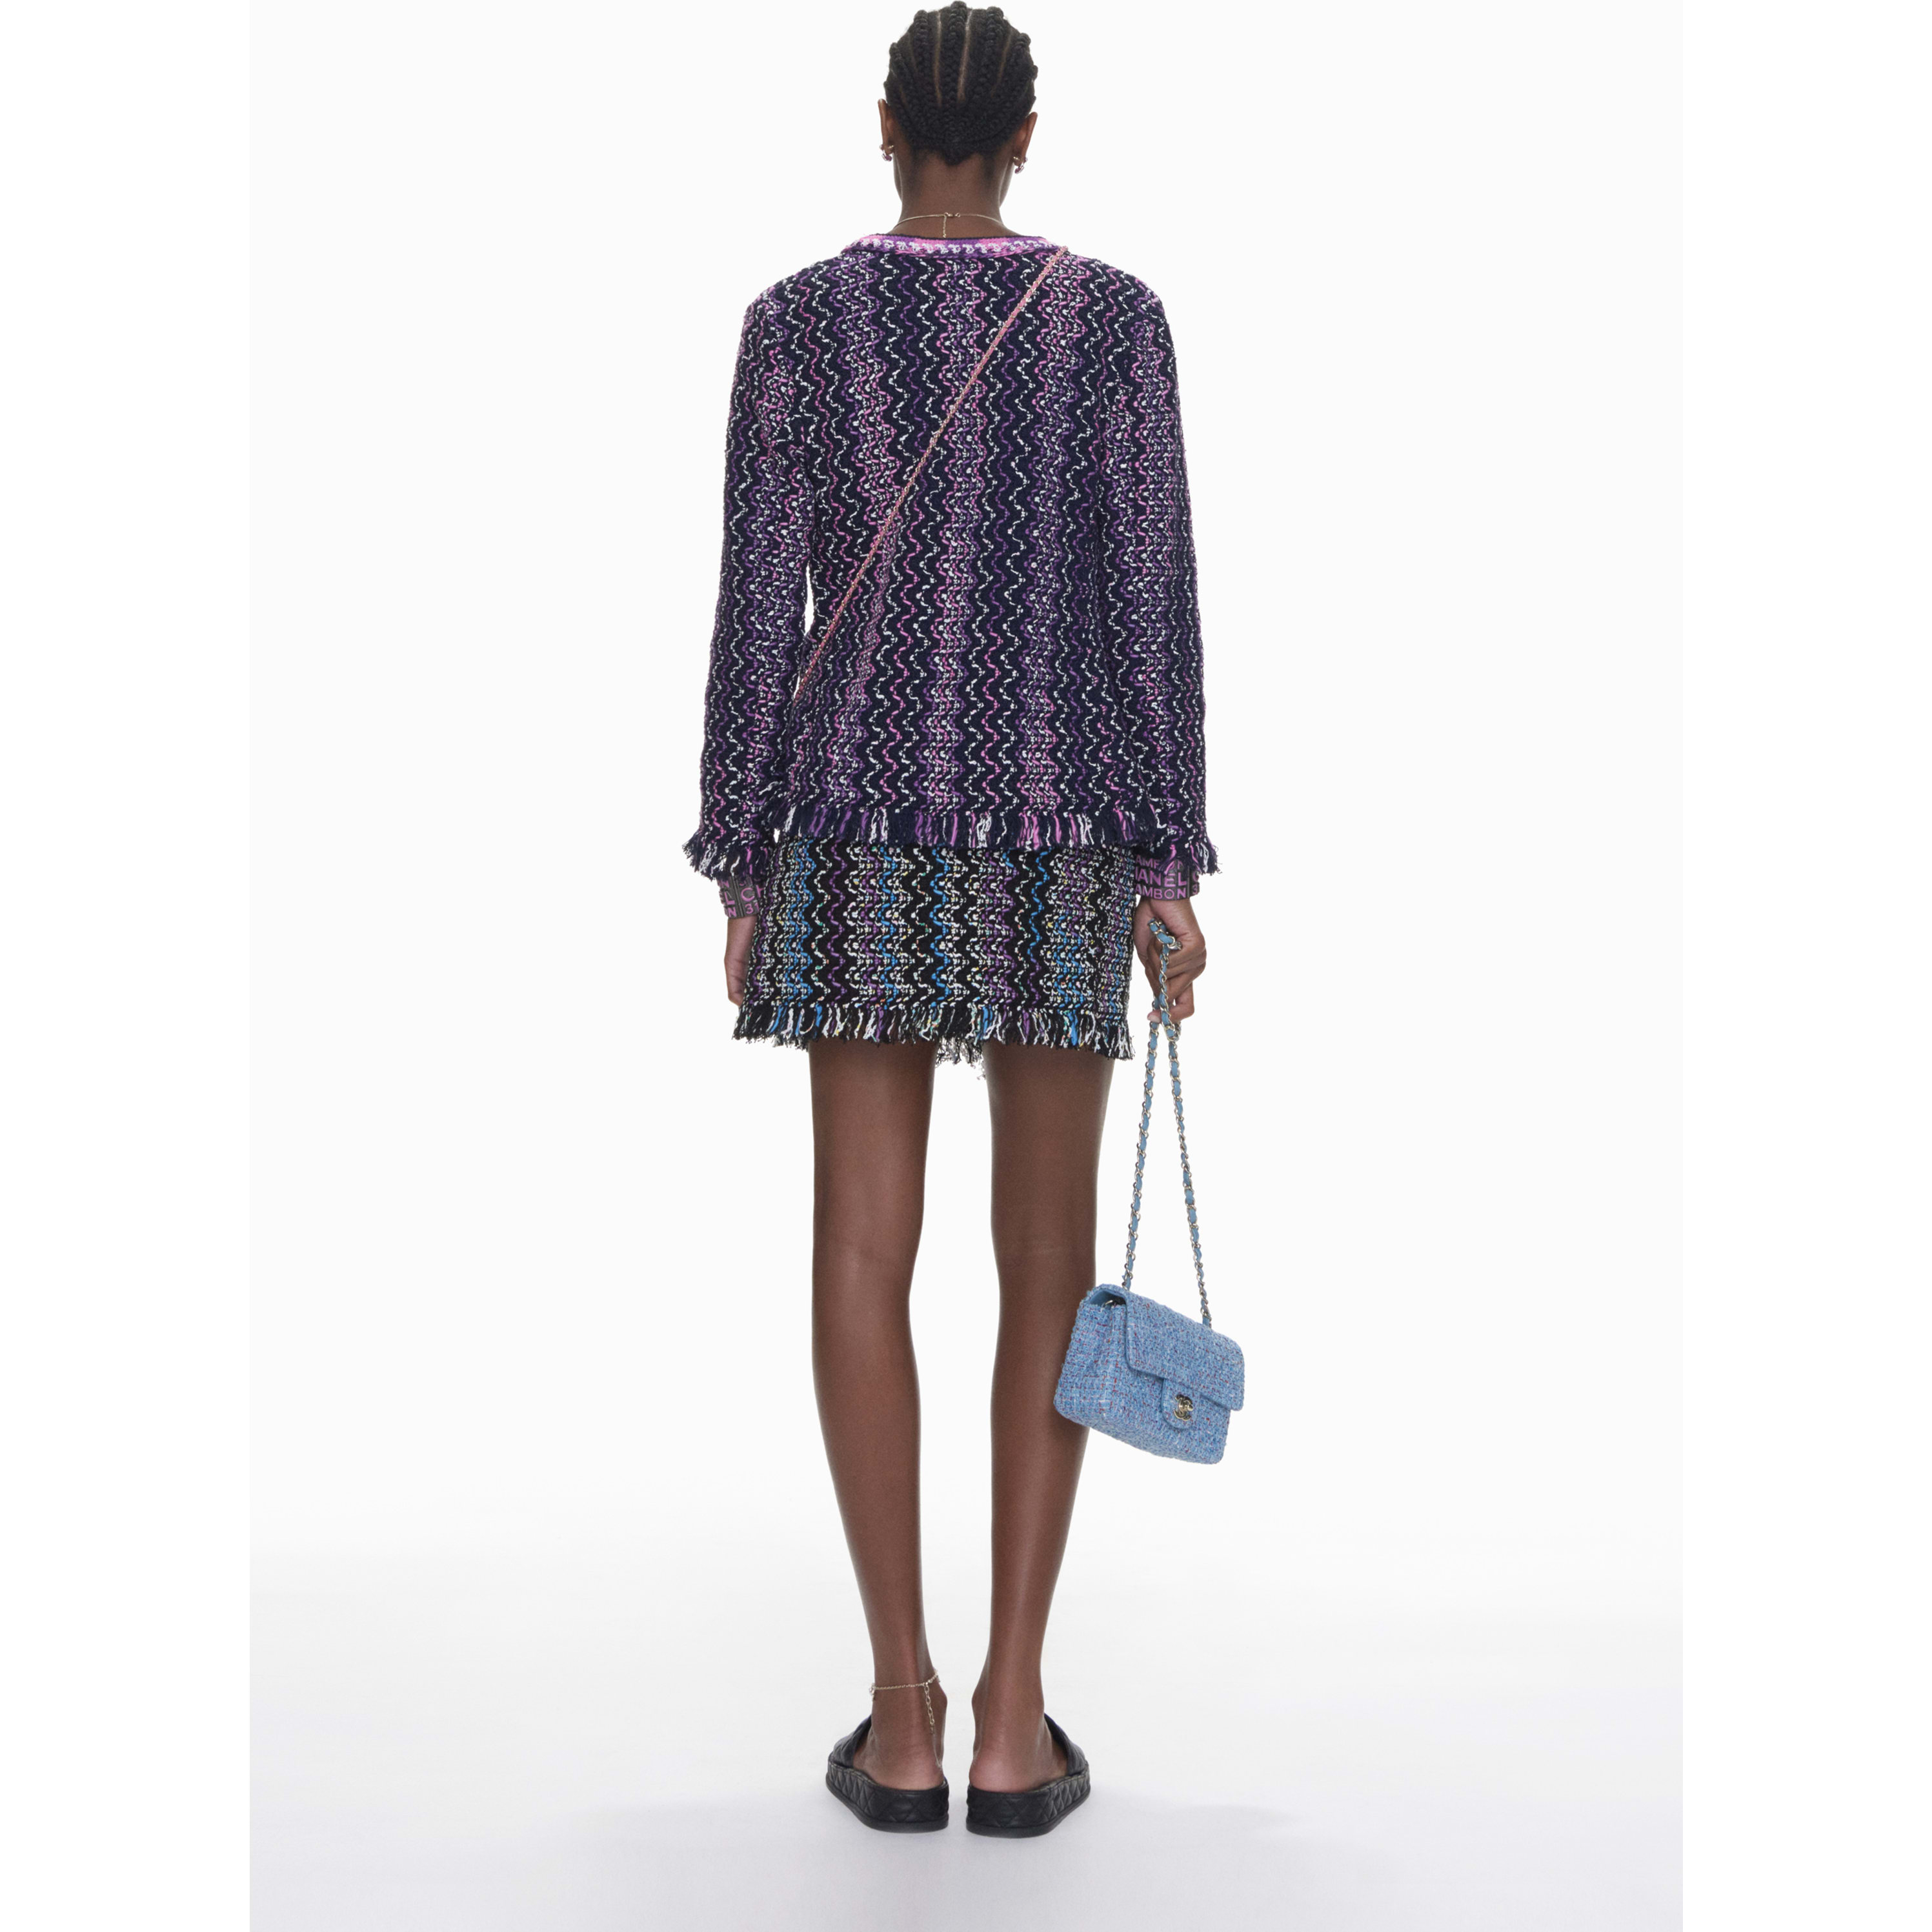 Cardigan - Navy Blue, Purple & Pink - Cotton & Mixed Fibers - CHANEL - Other view - see standard sized version